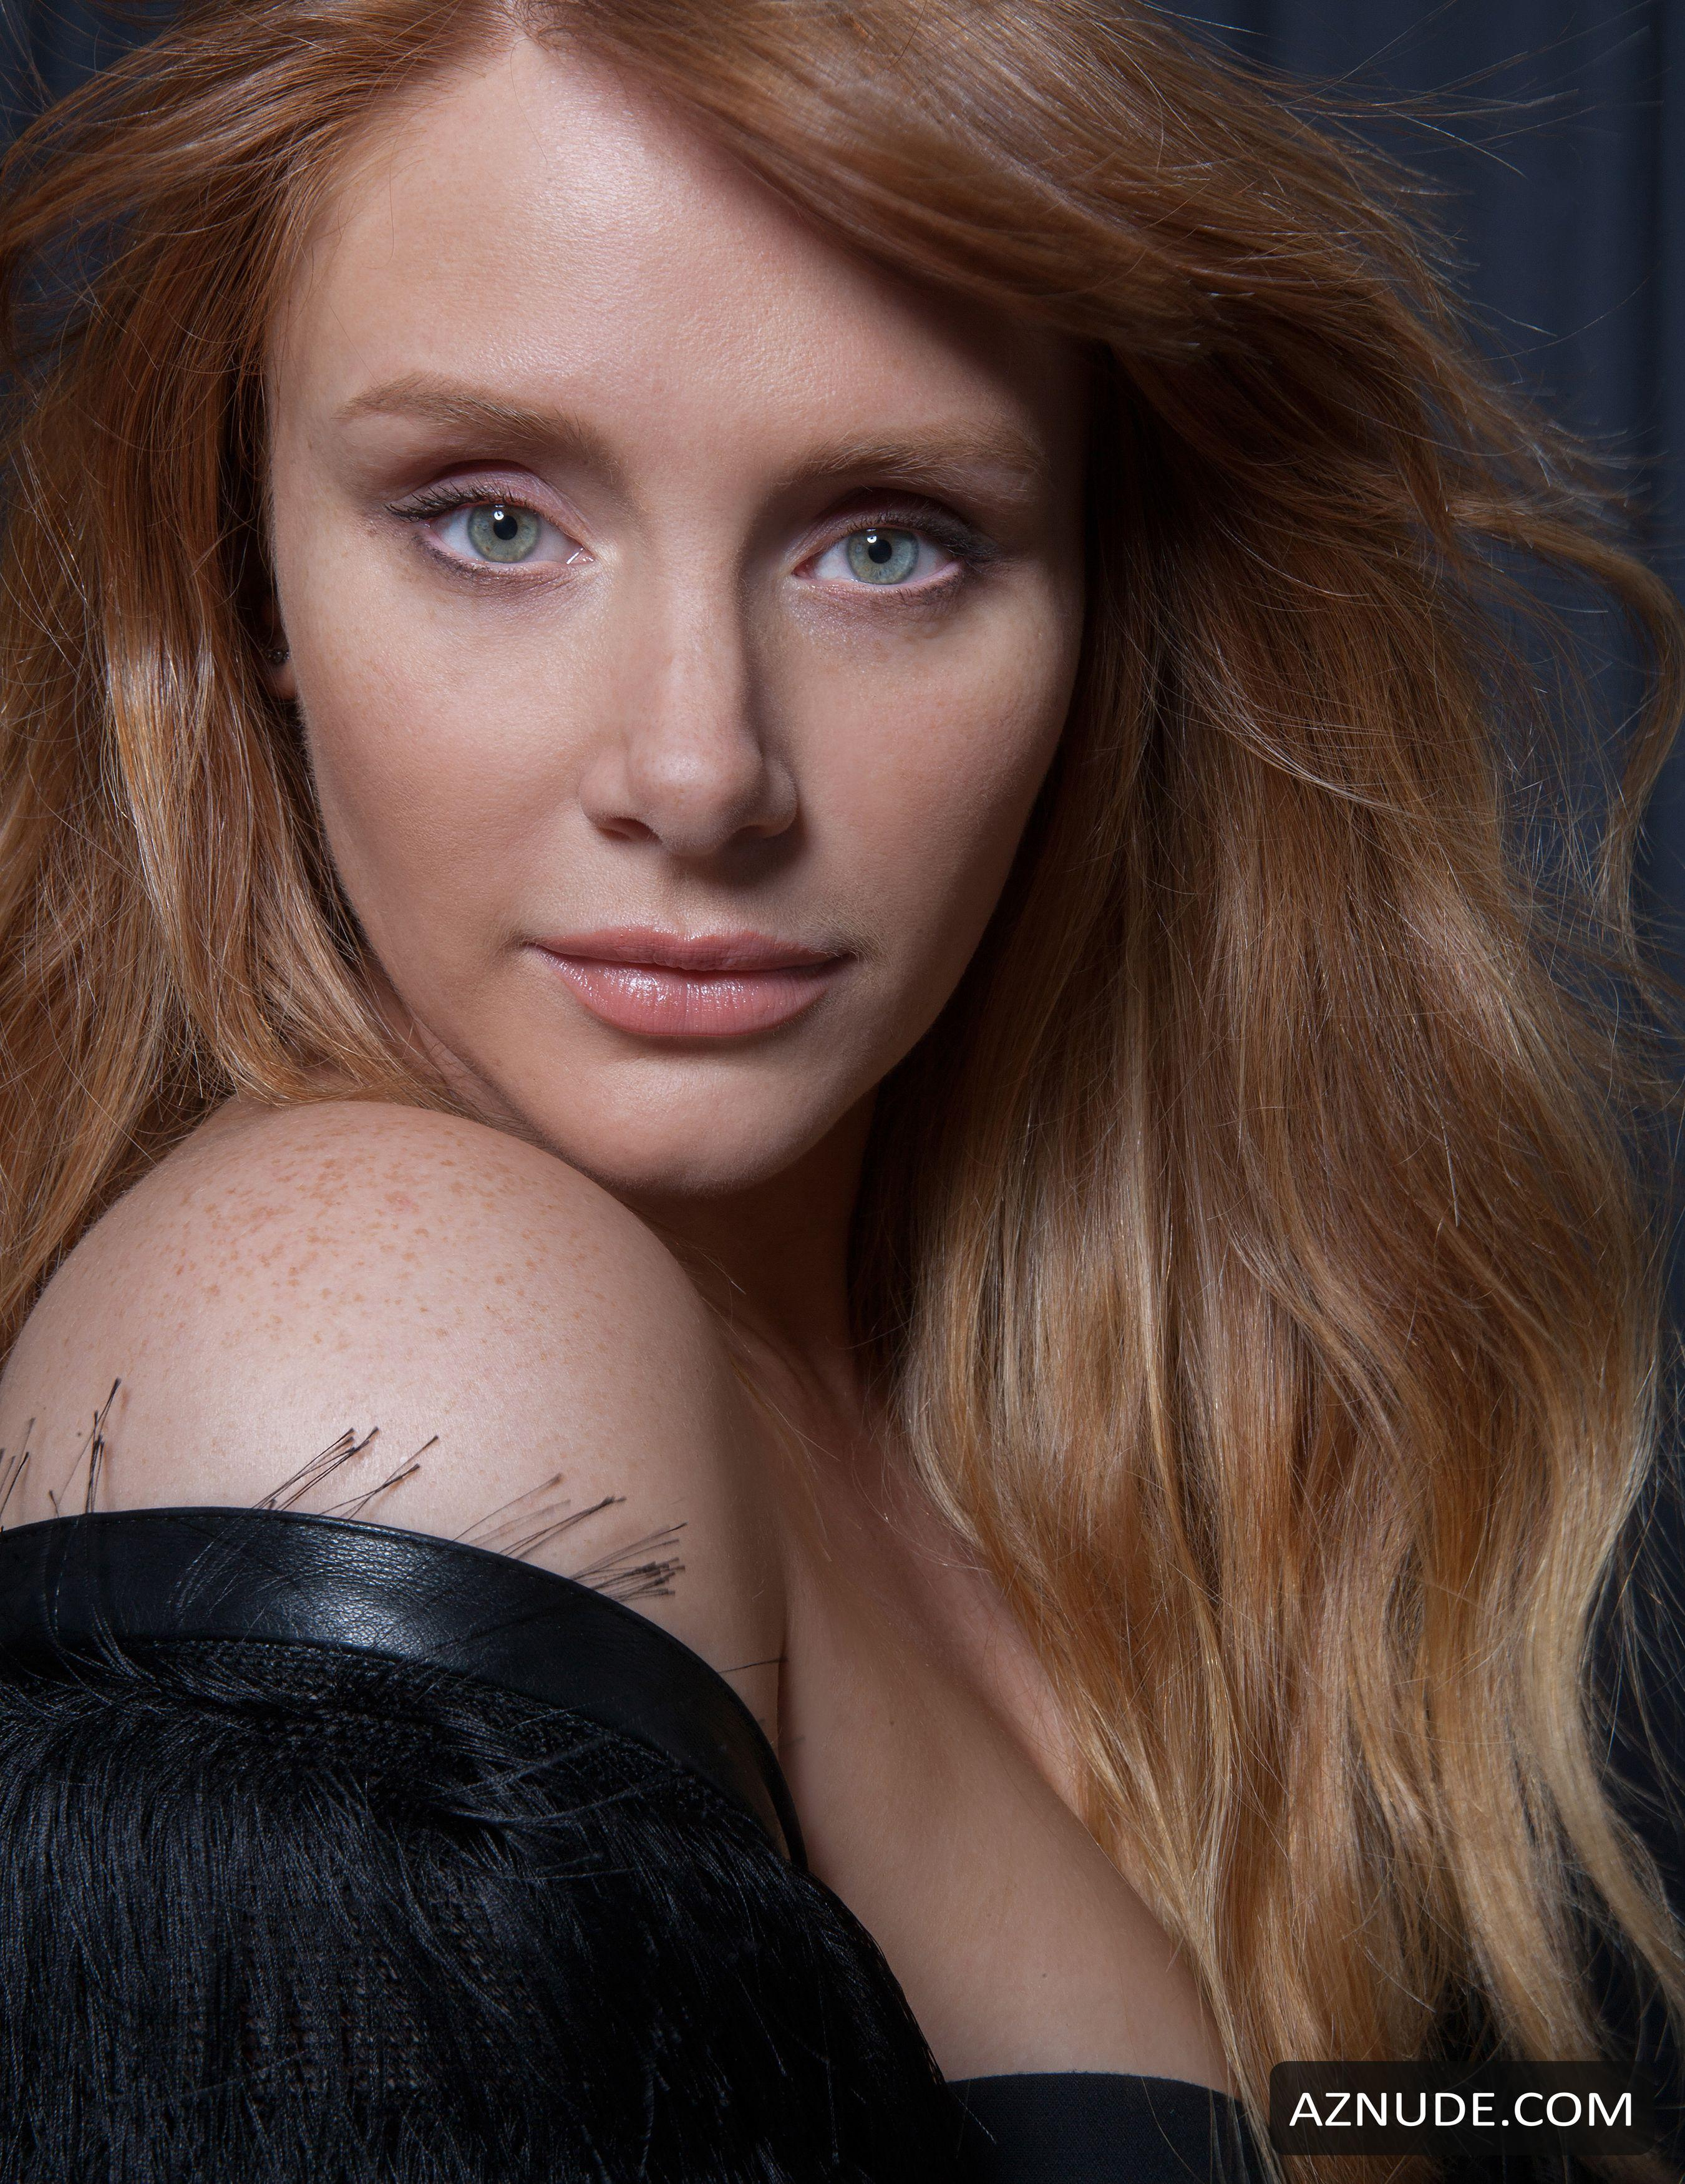 Bryce dallas howard nude pics